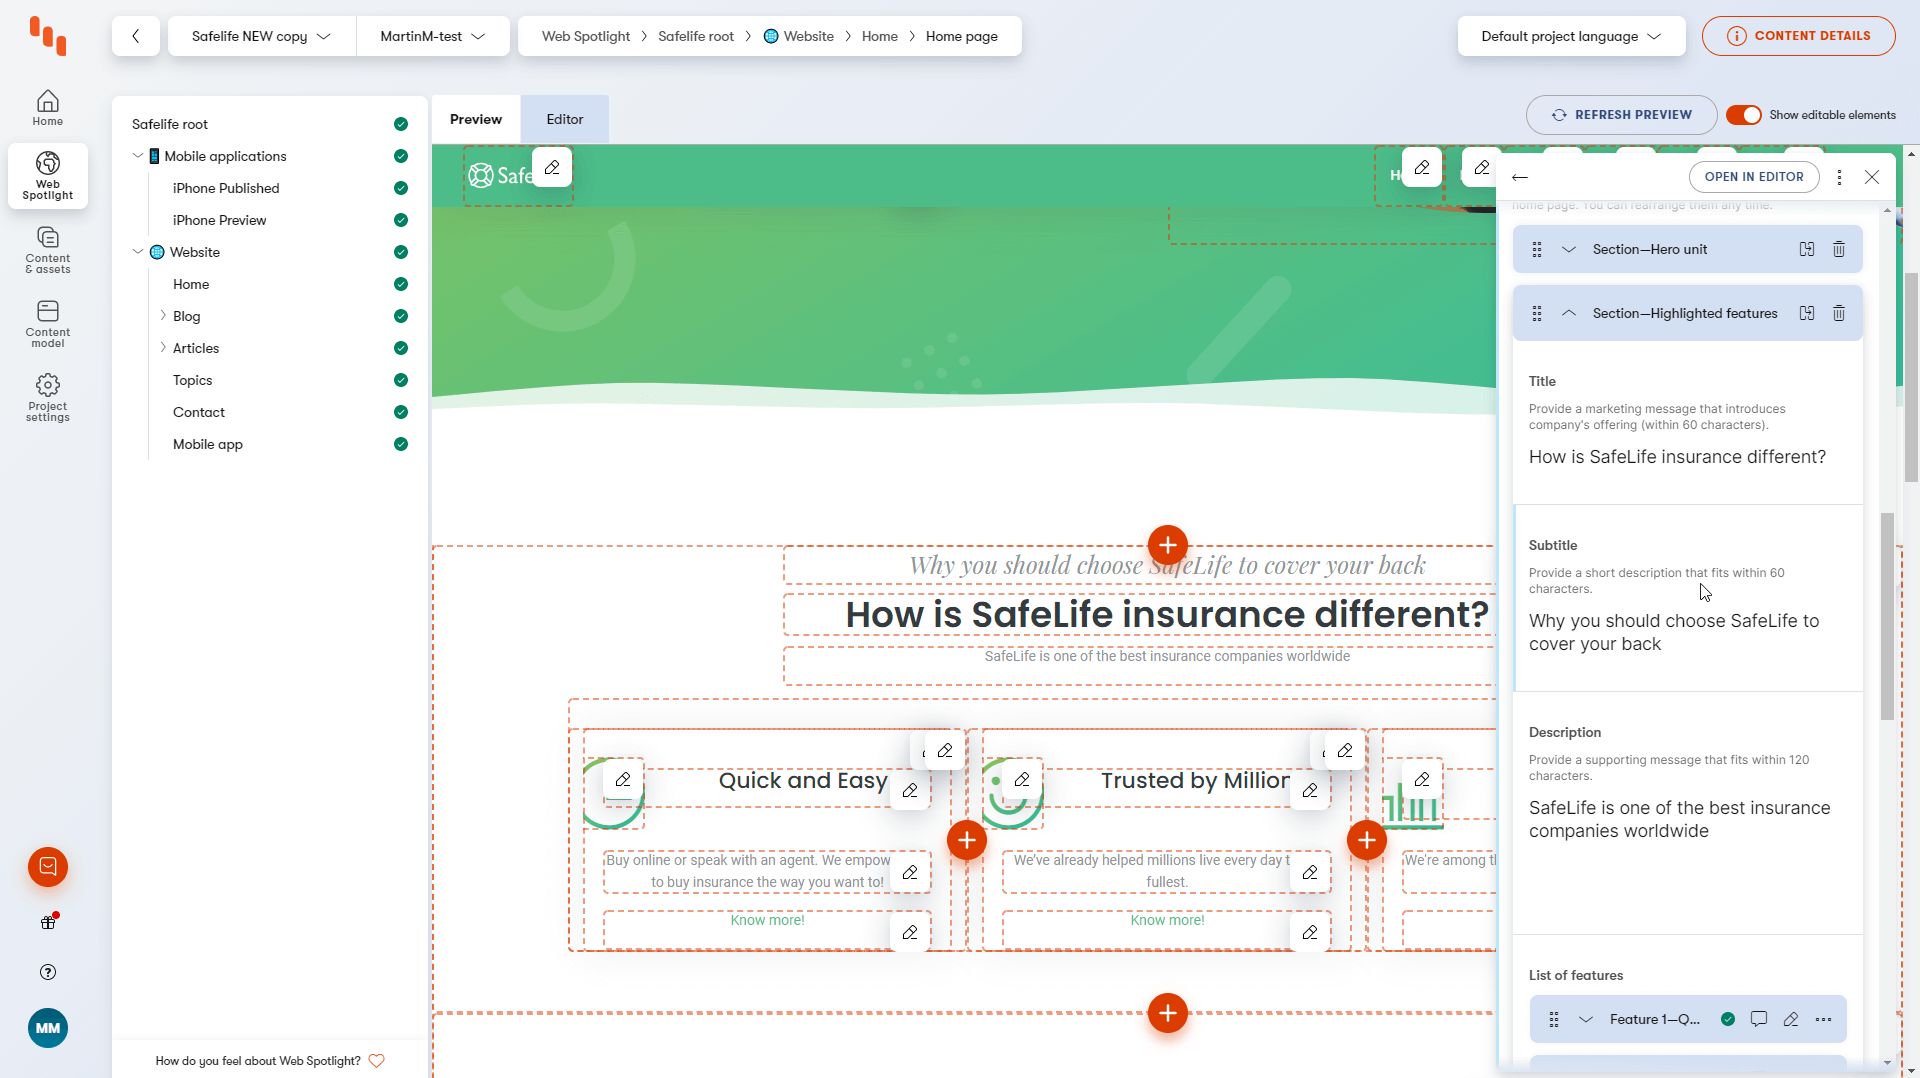 Kentico Kontent's Web Spotlight and redesigned user interface